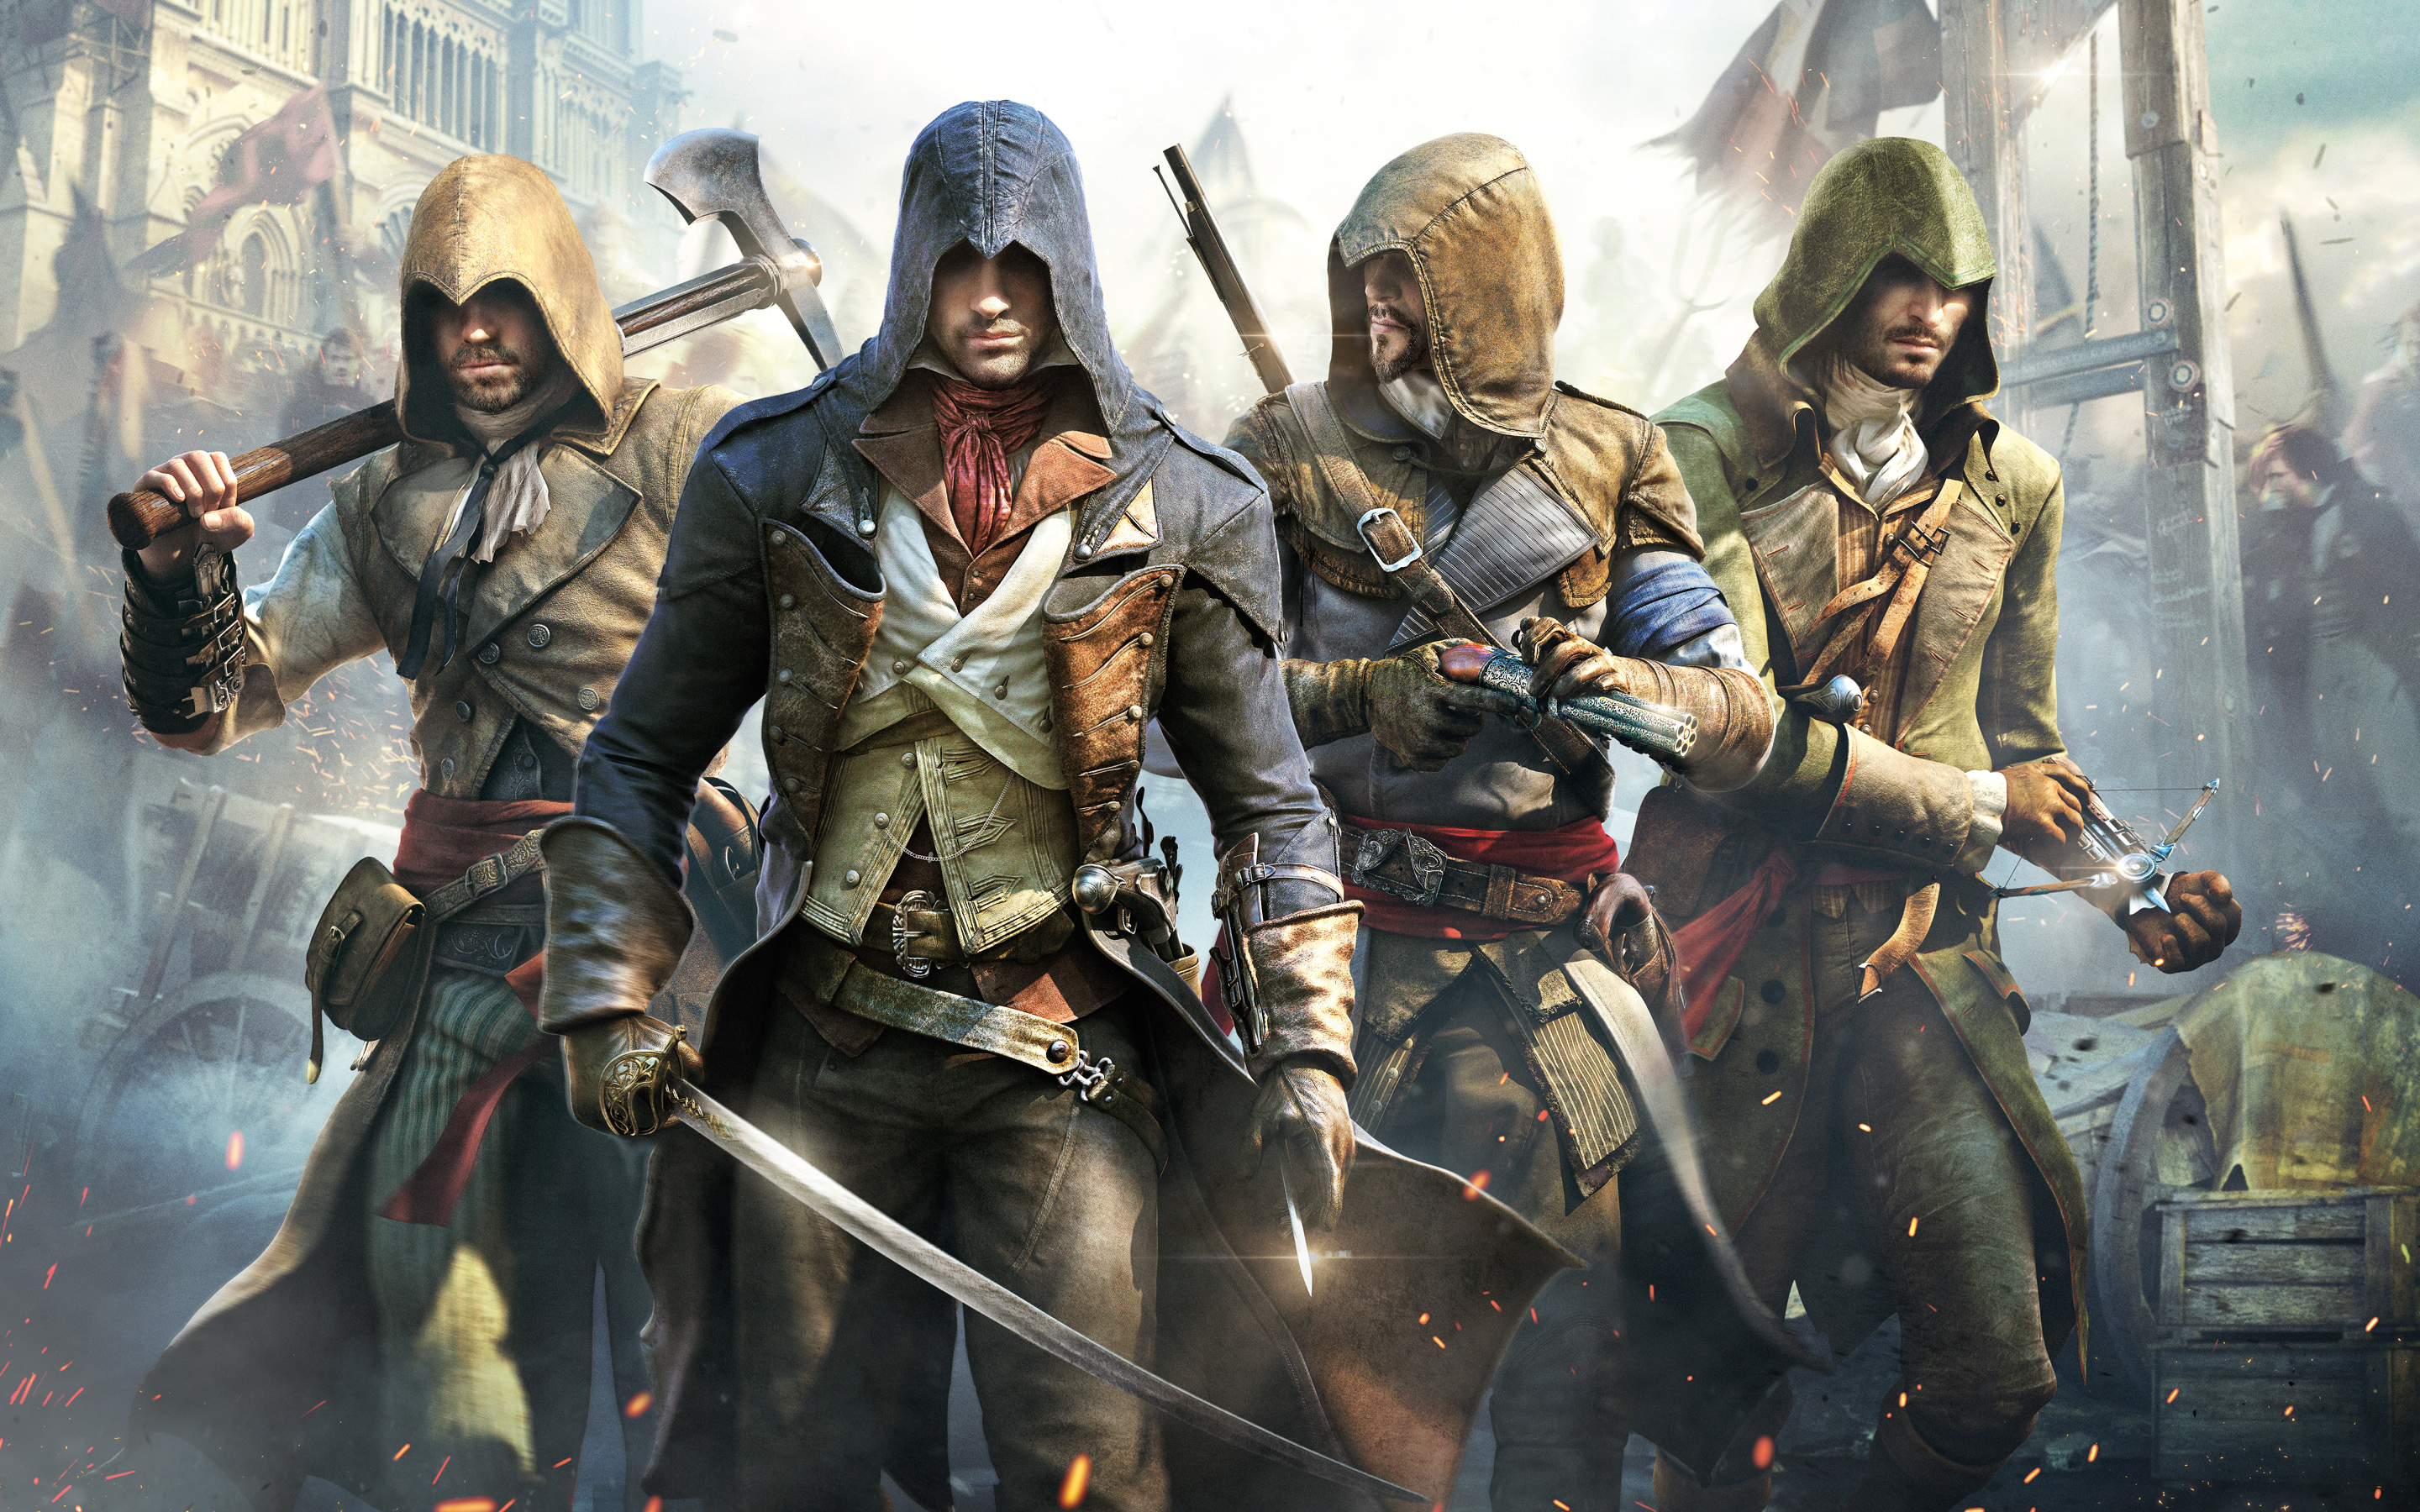 10 Off-The-Wall Ideas for Assassin's Creed Locations